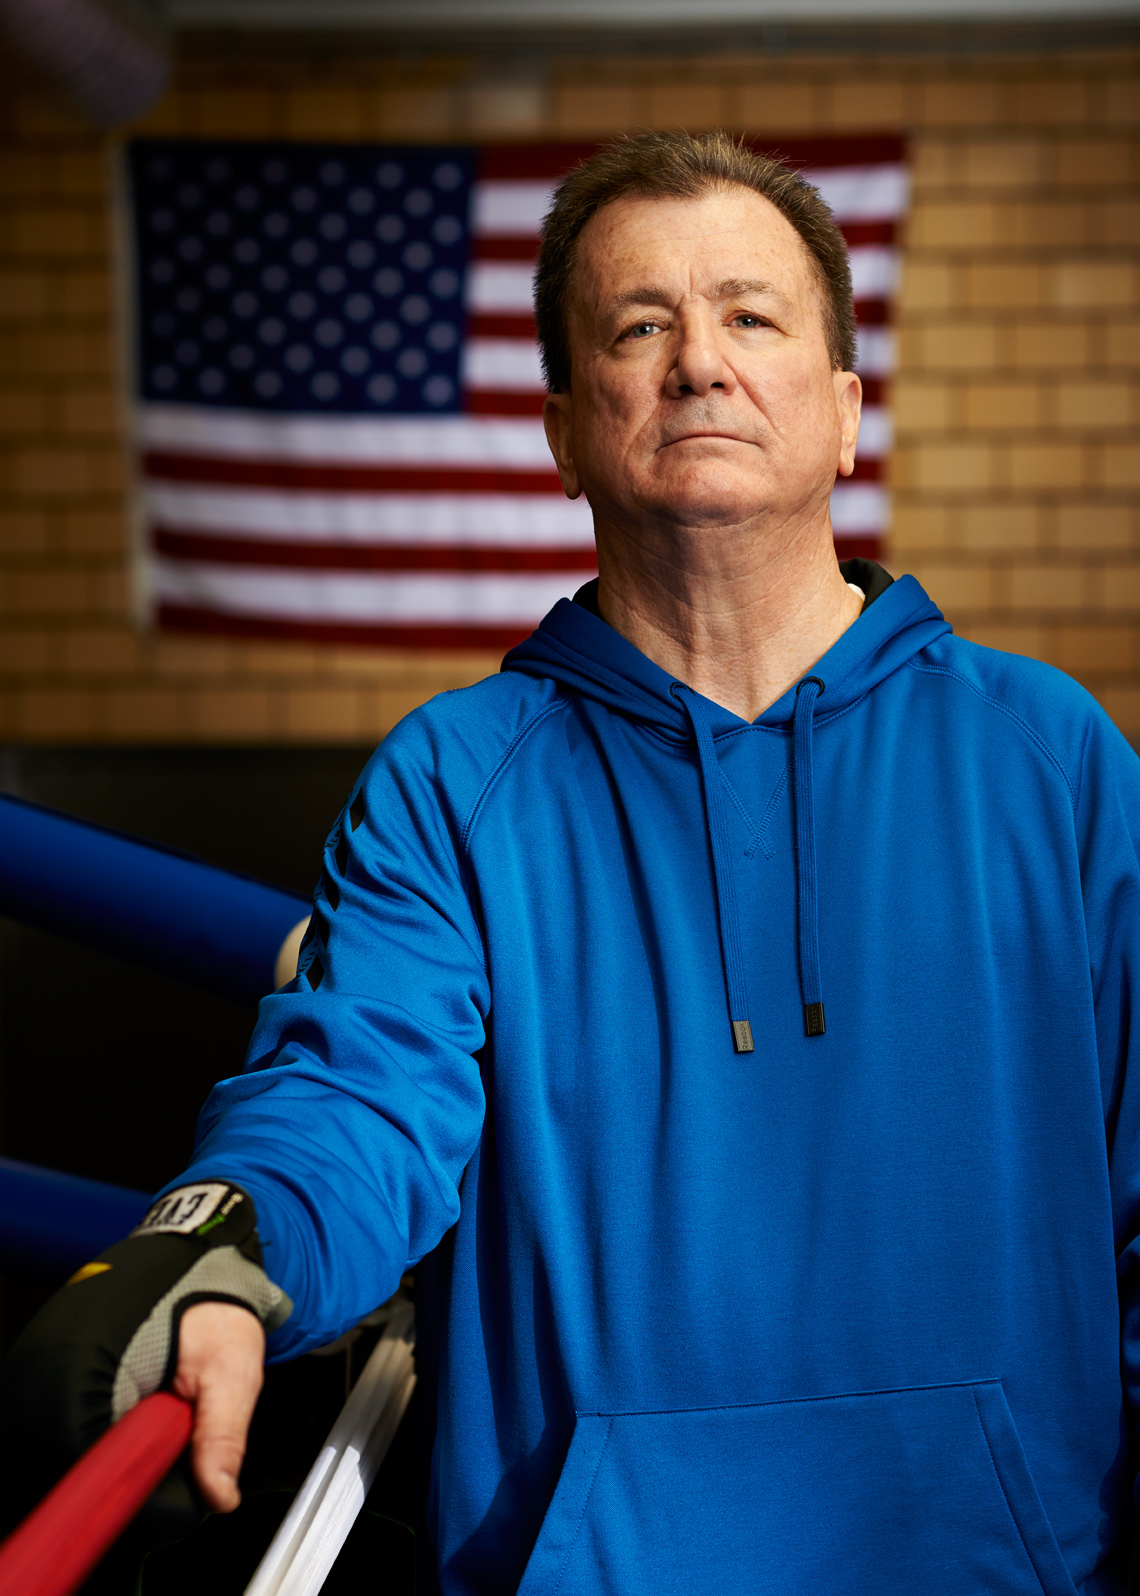 White Ex Cop Boxing Coach in Blue sweatshirt